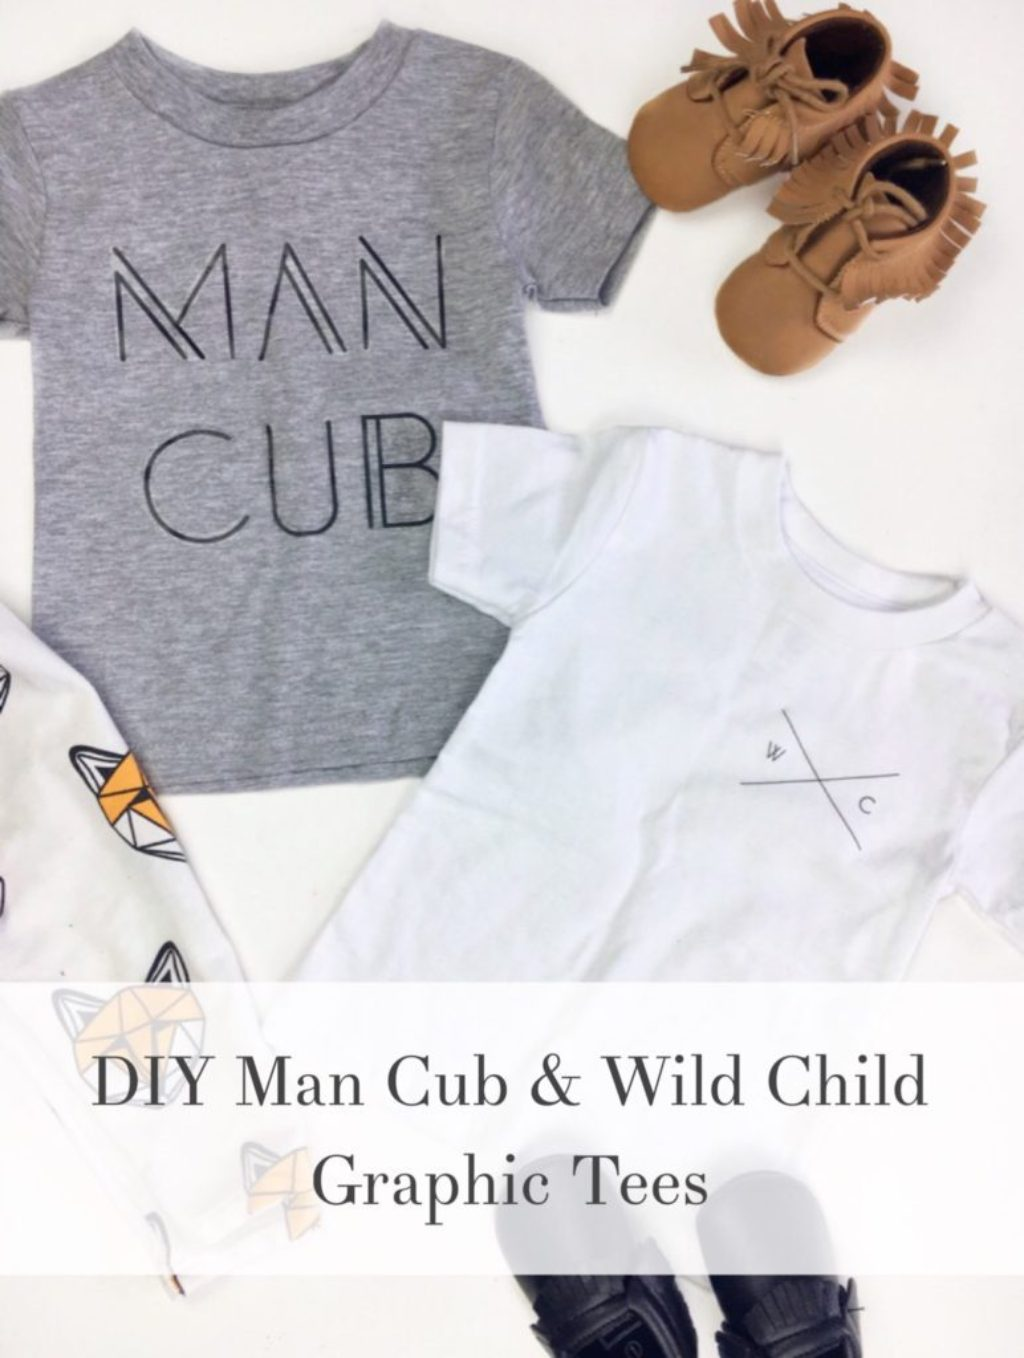 dc5aadf1d DIY Man Cub & Wild Child Graphic Tees w/ Free Printable Graphics ...